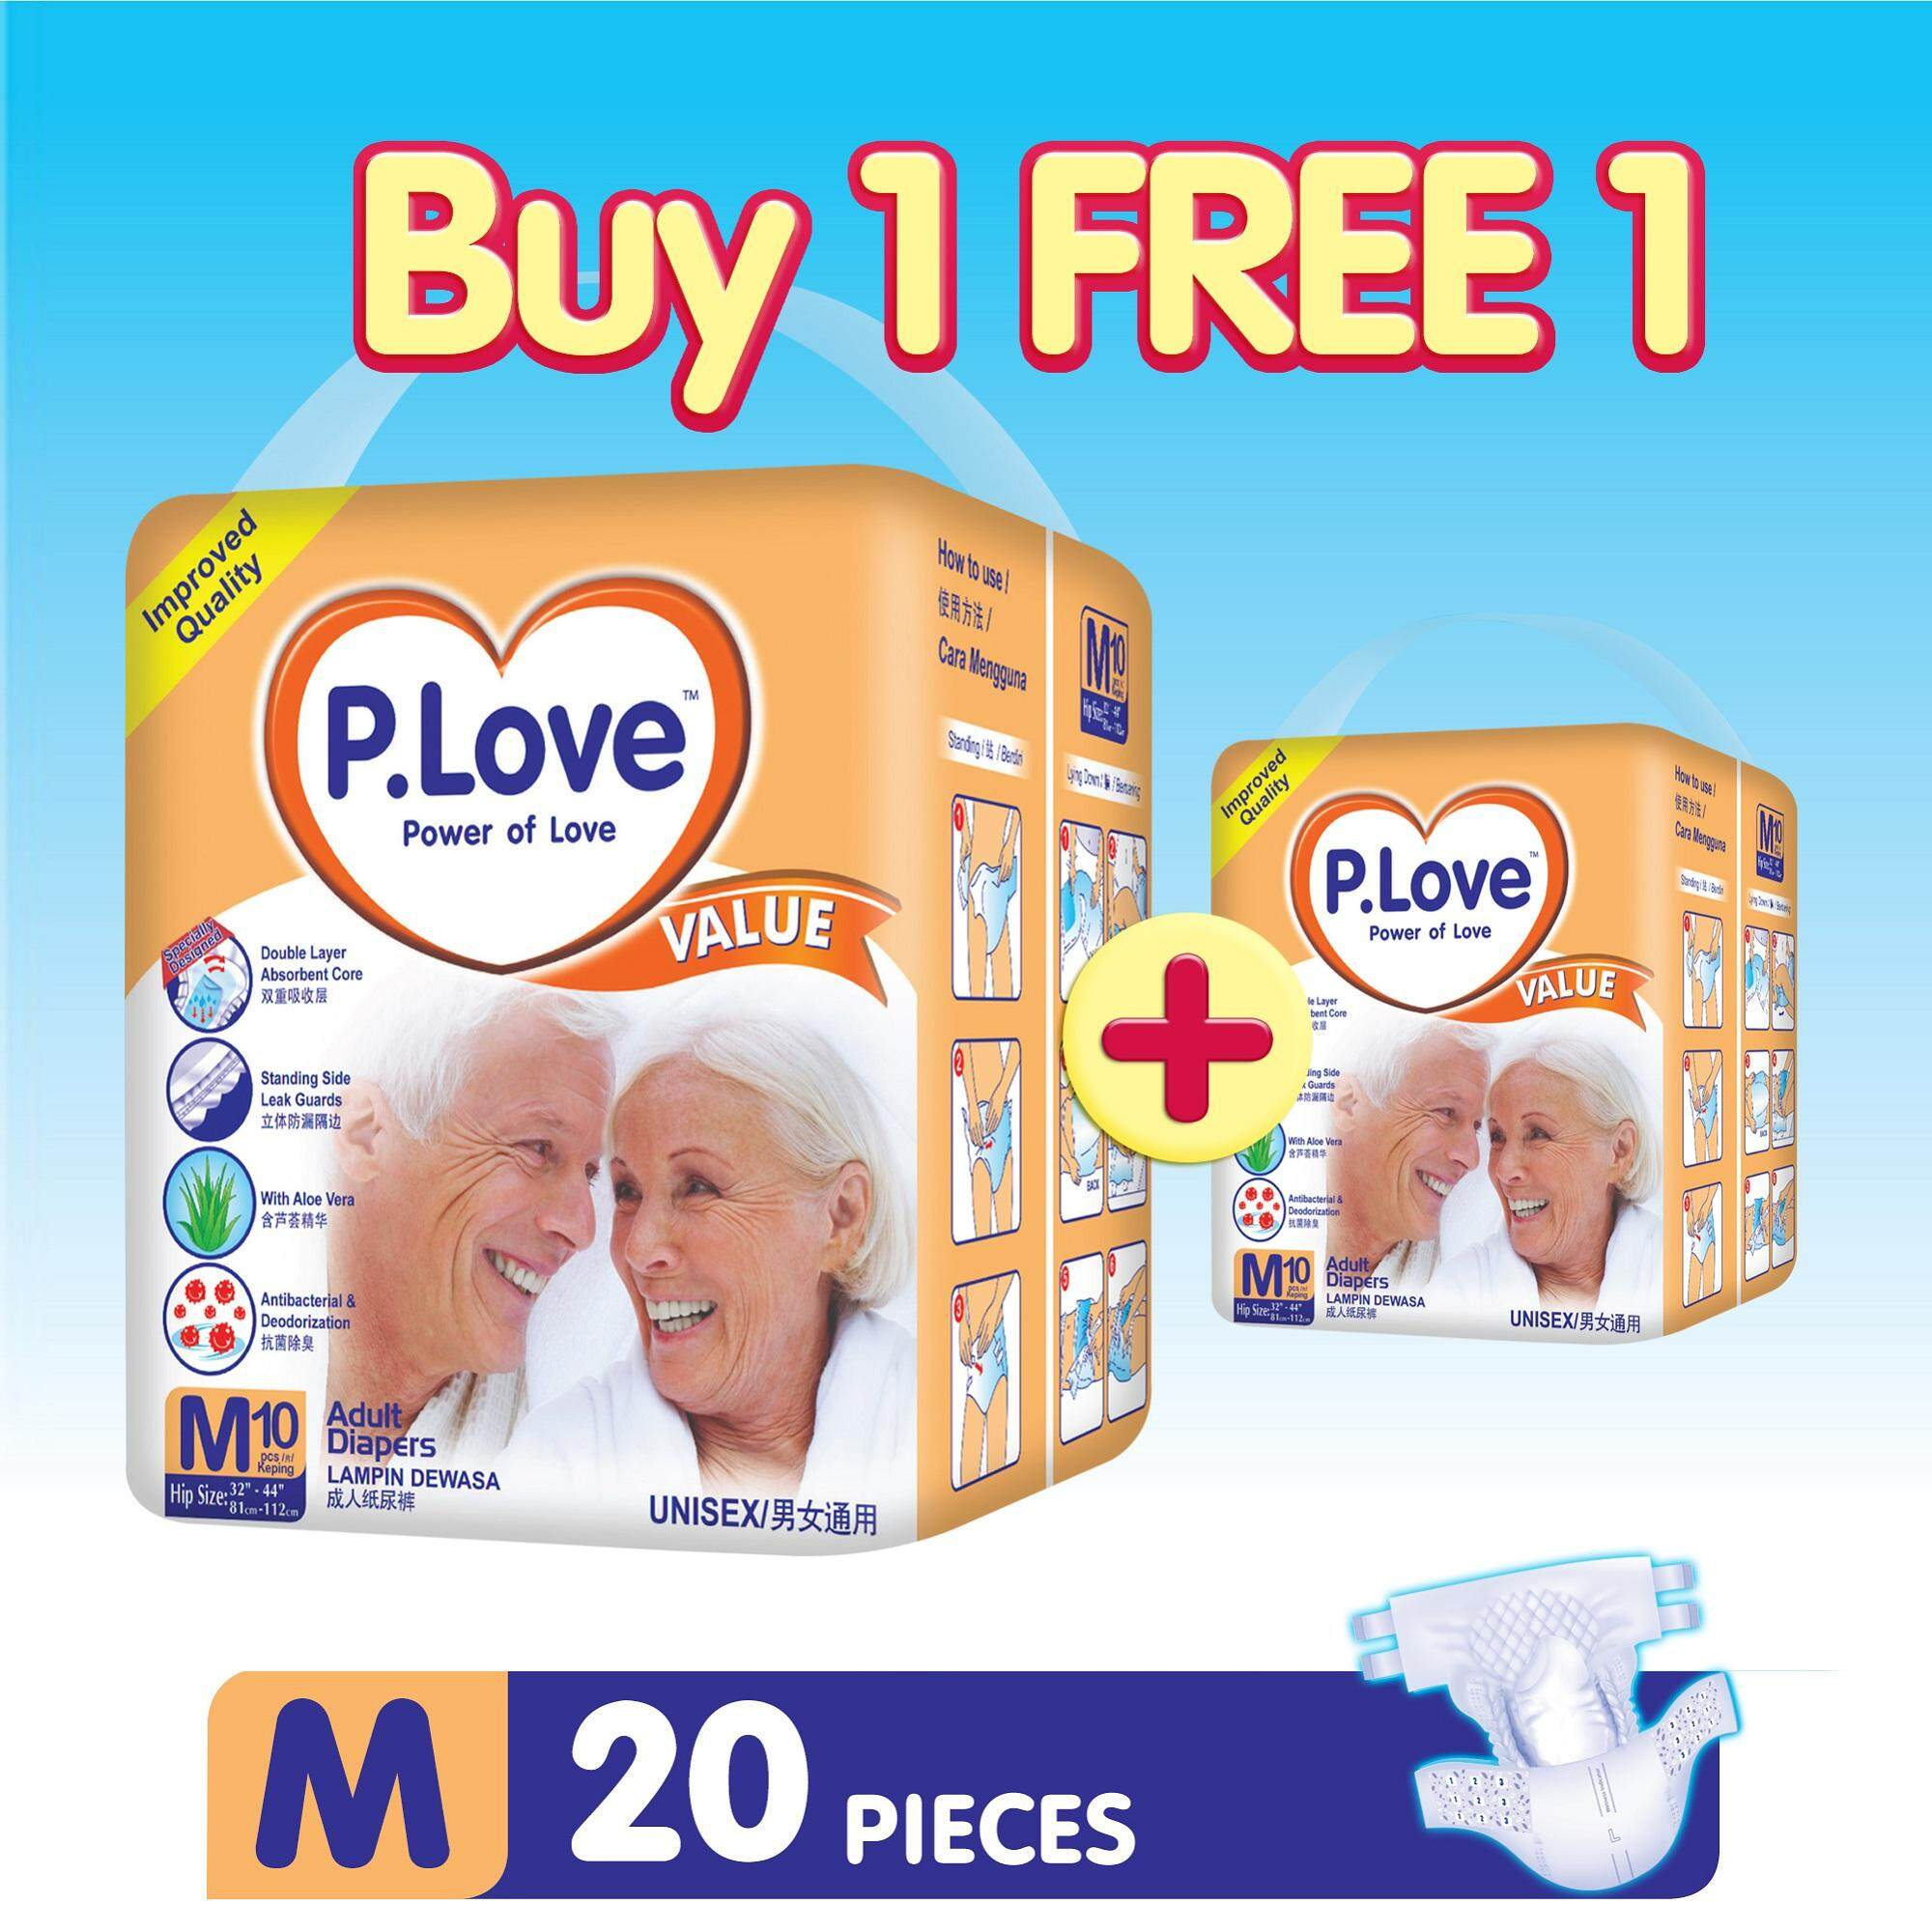 [B1F1] PLove Value Adult Tape Diapers M10 [WangZheng CARE]